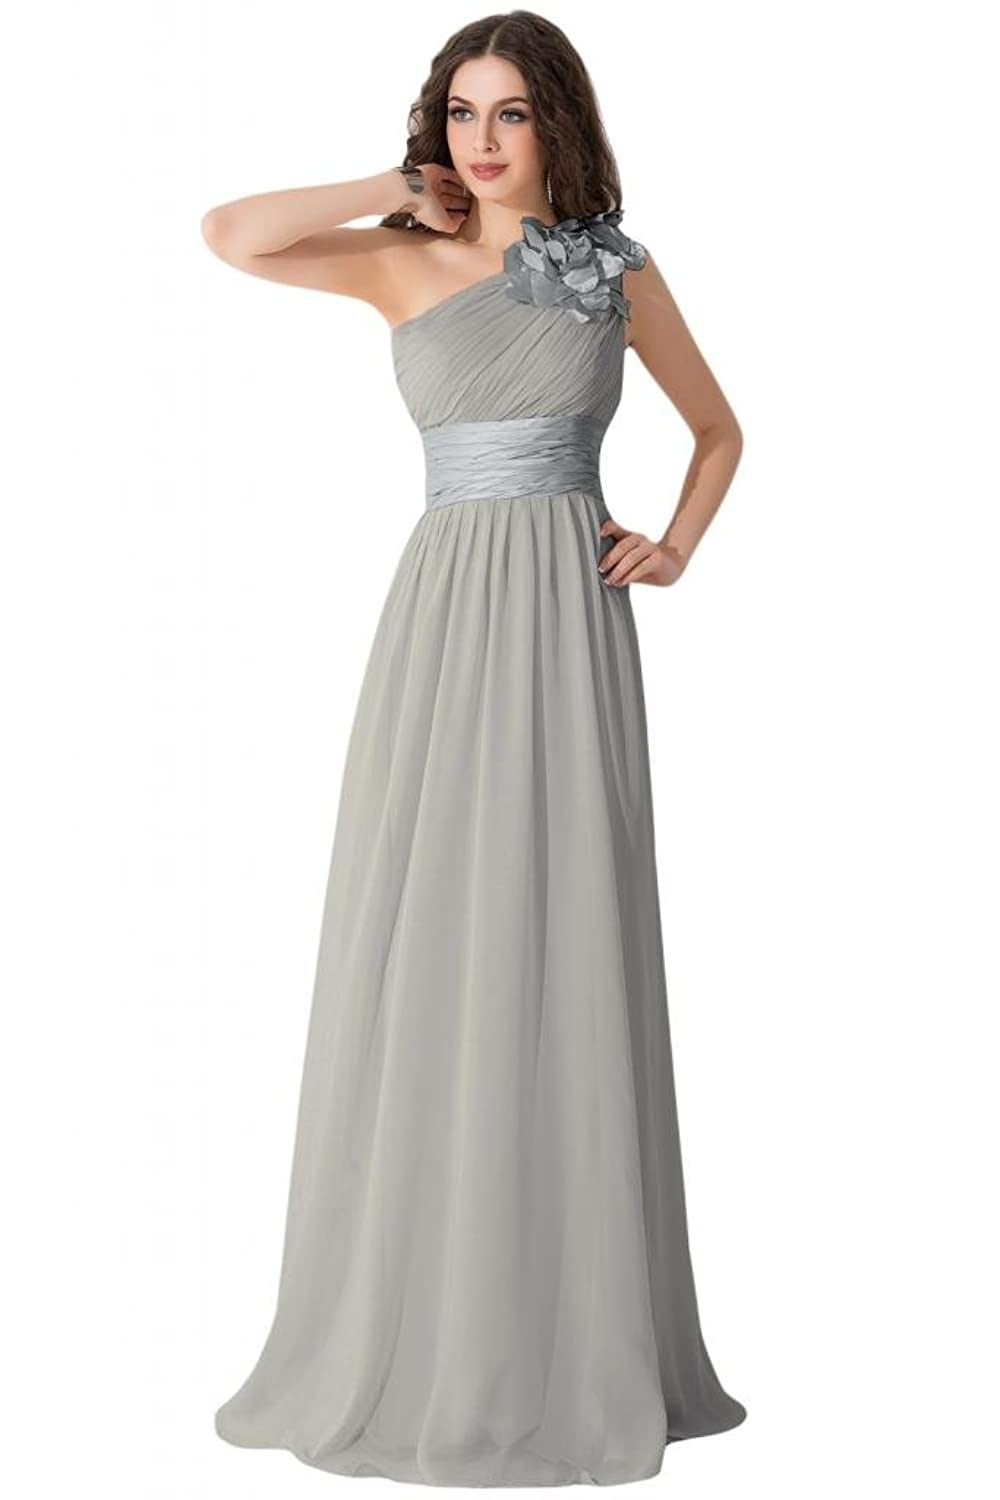 Sunvary Graceful Inclined-shoulder Evening Dresses Party Gowns Maxi Bridesmaid Dress